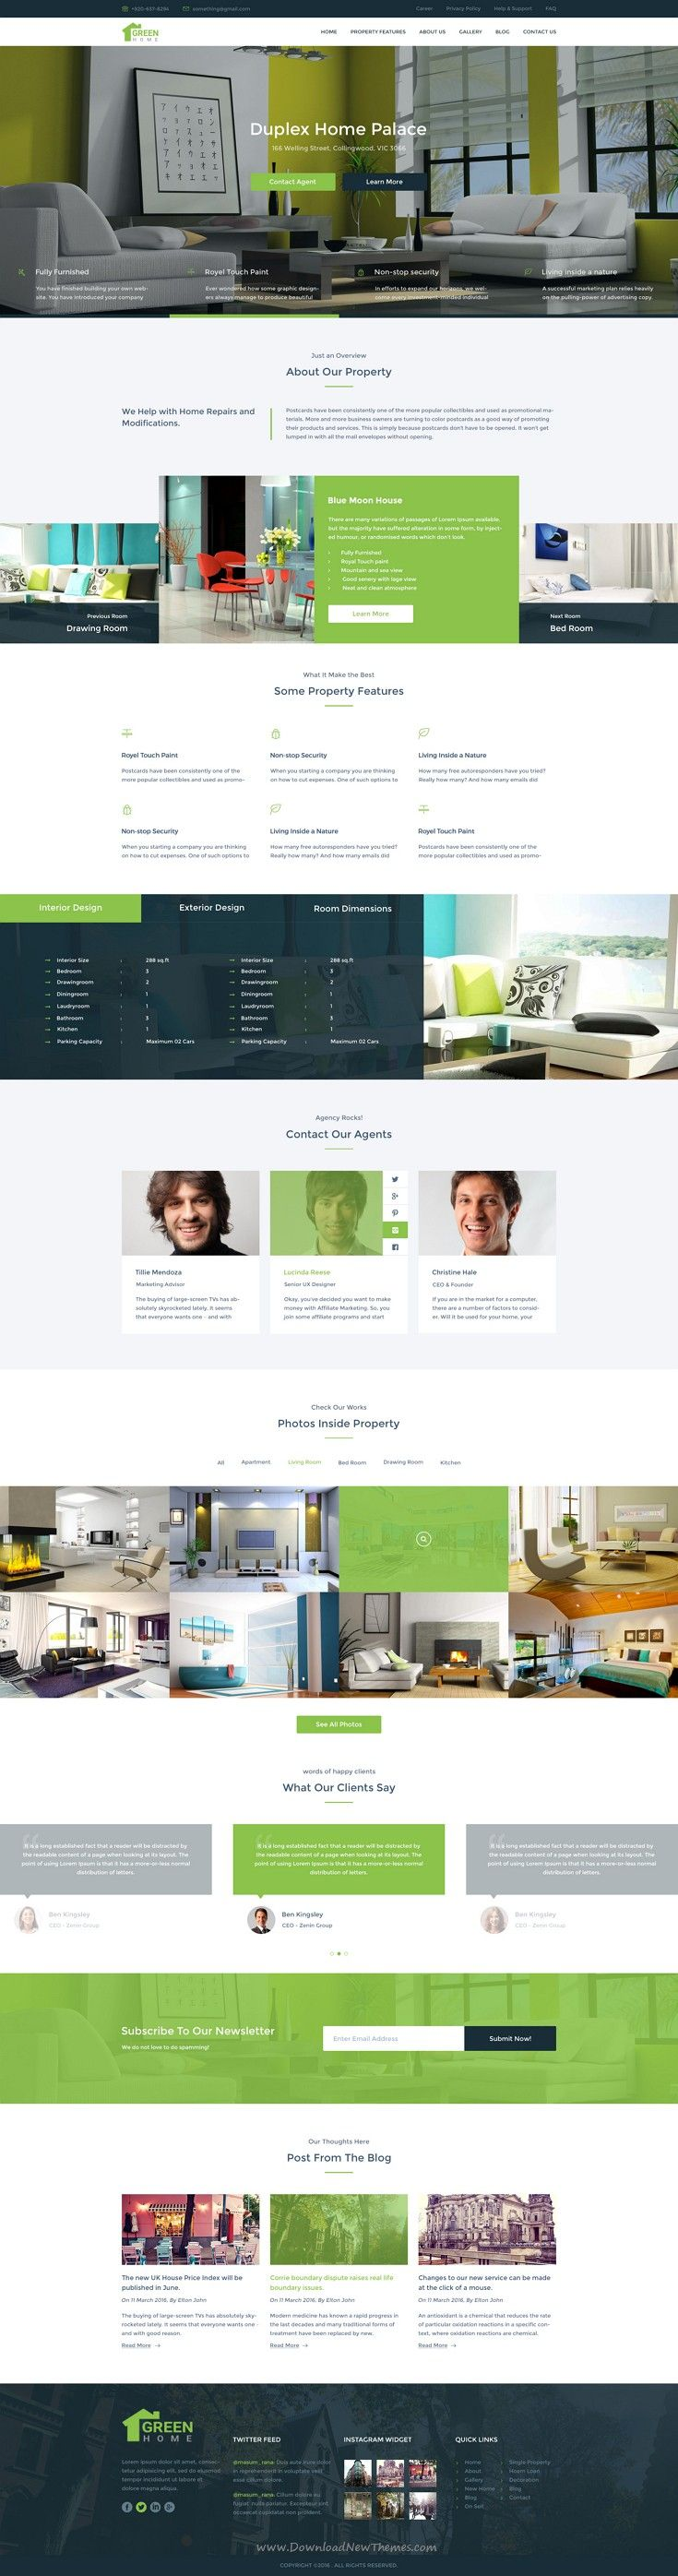 Green Home Single Property Real Estate PSD #Template is best solution for both Real Estate Agencies and #Property Owners #website. Download Now!